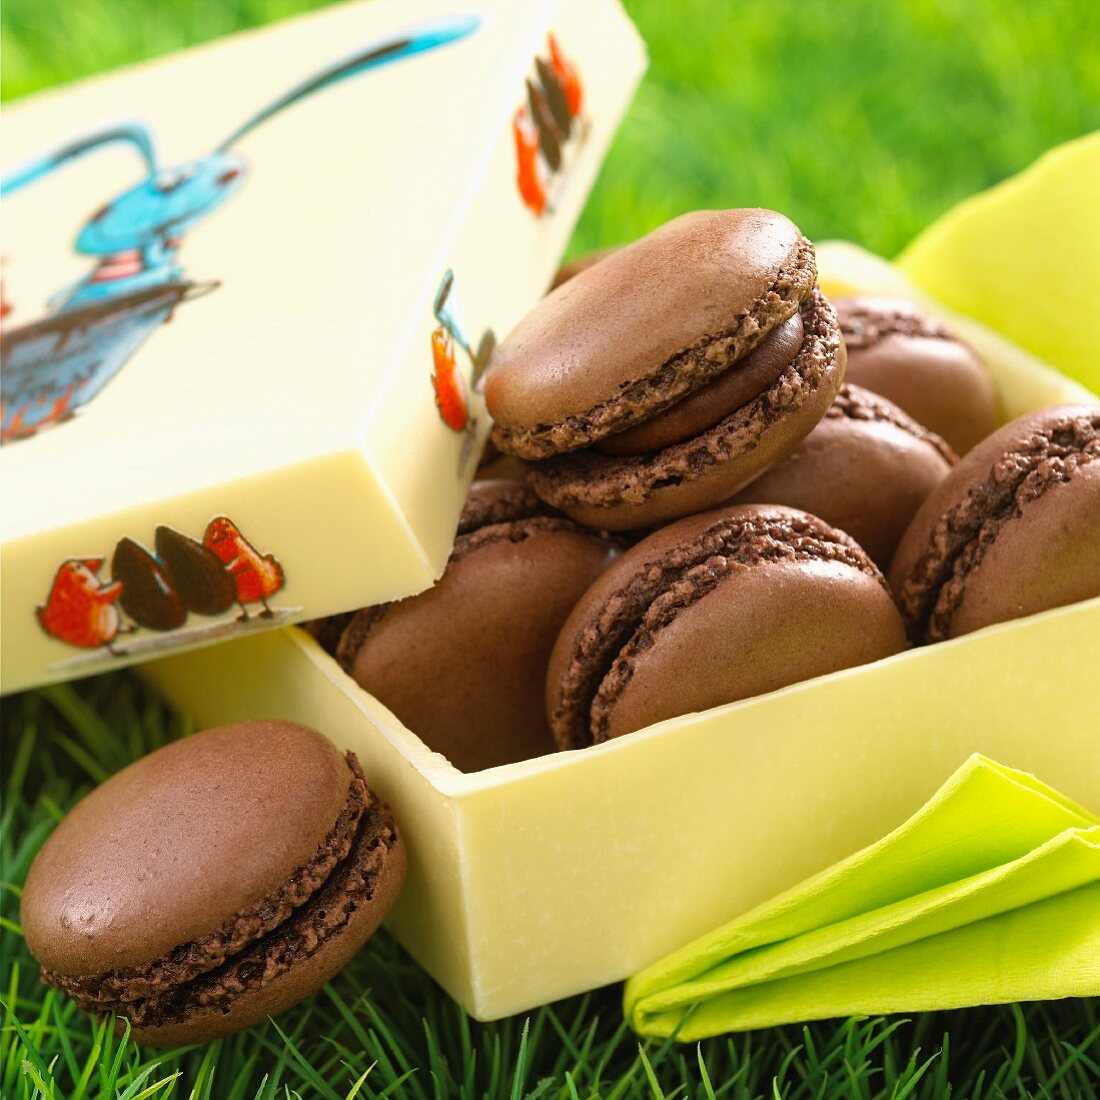 Chocolate macaroons in a box